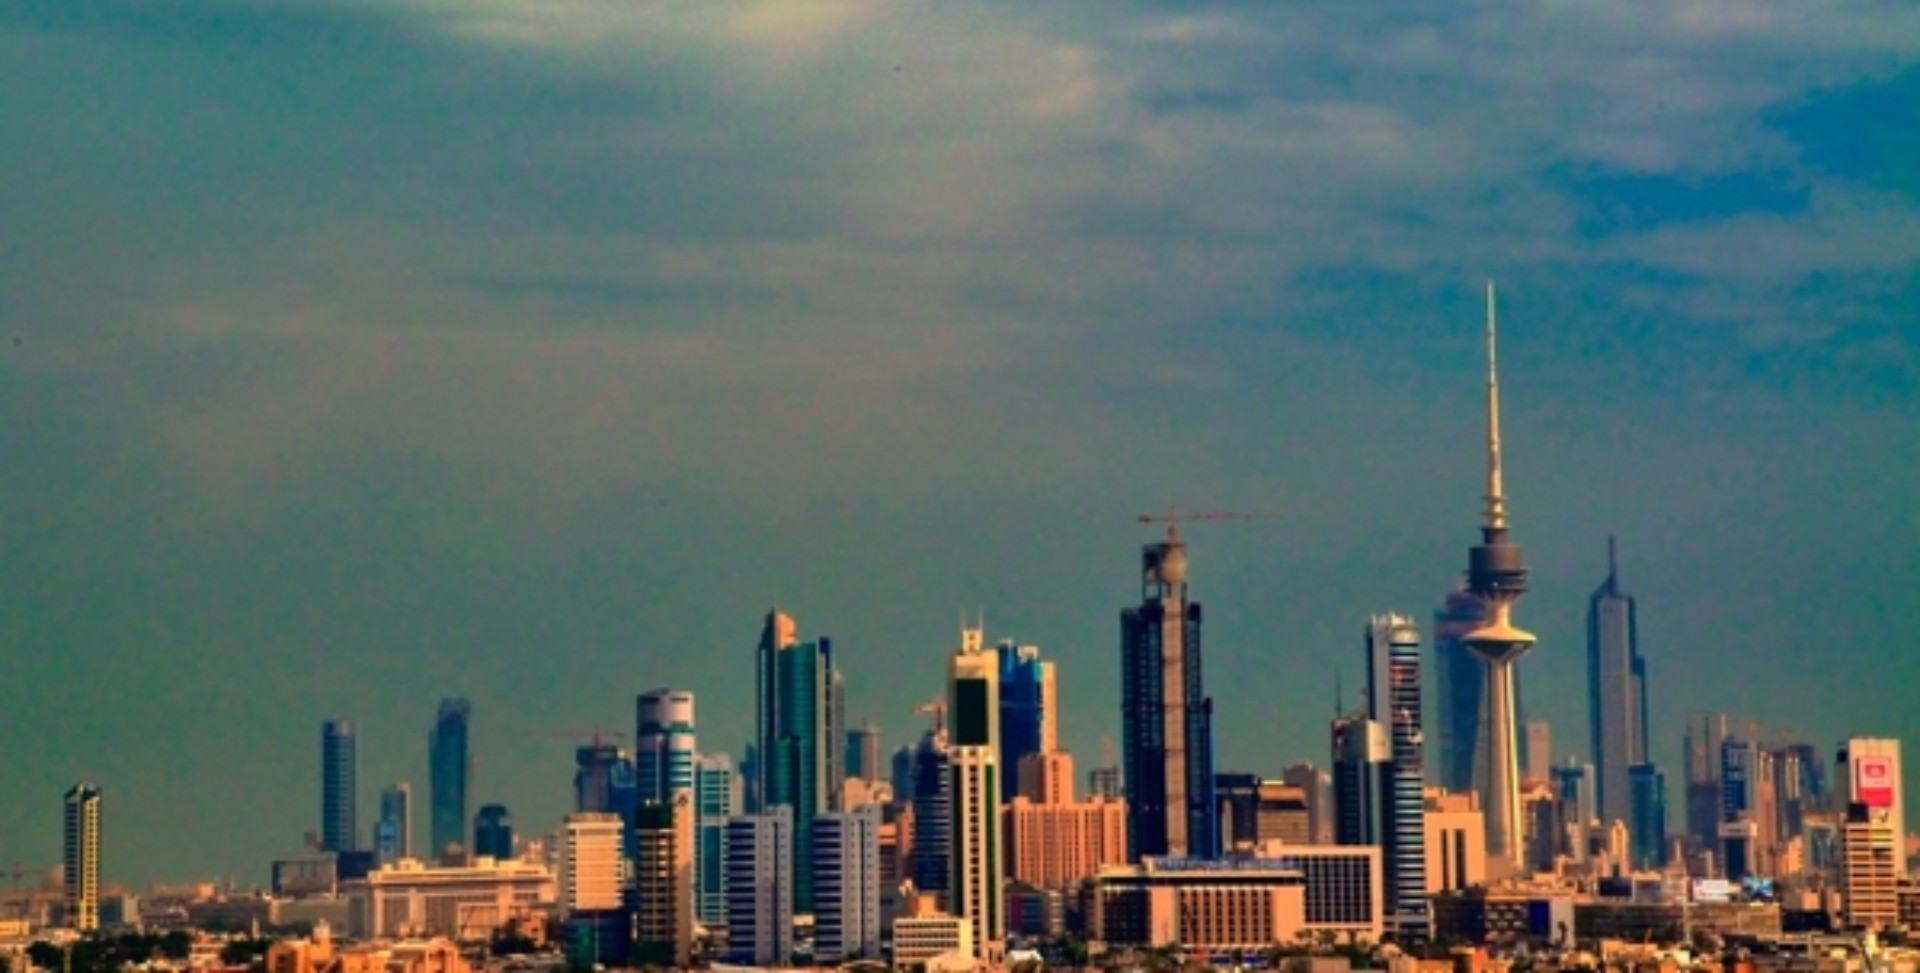 Kuwait City Wallpapers and Background Images   stmednet 1920x973